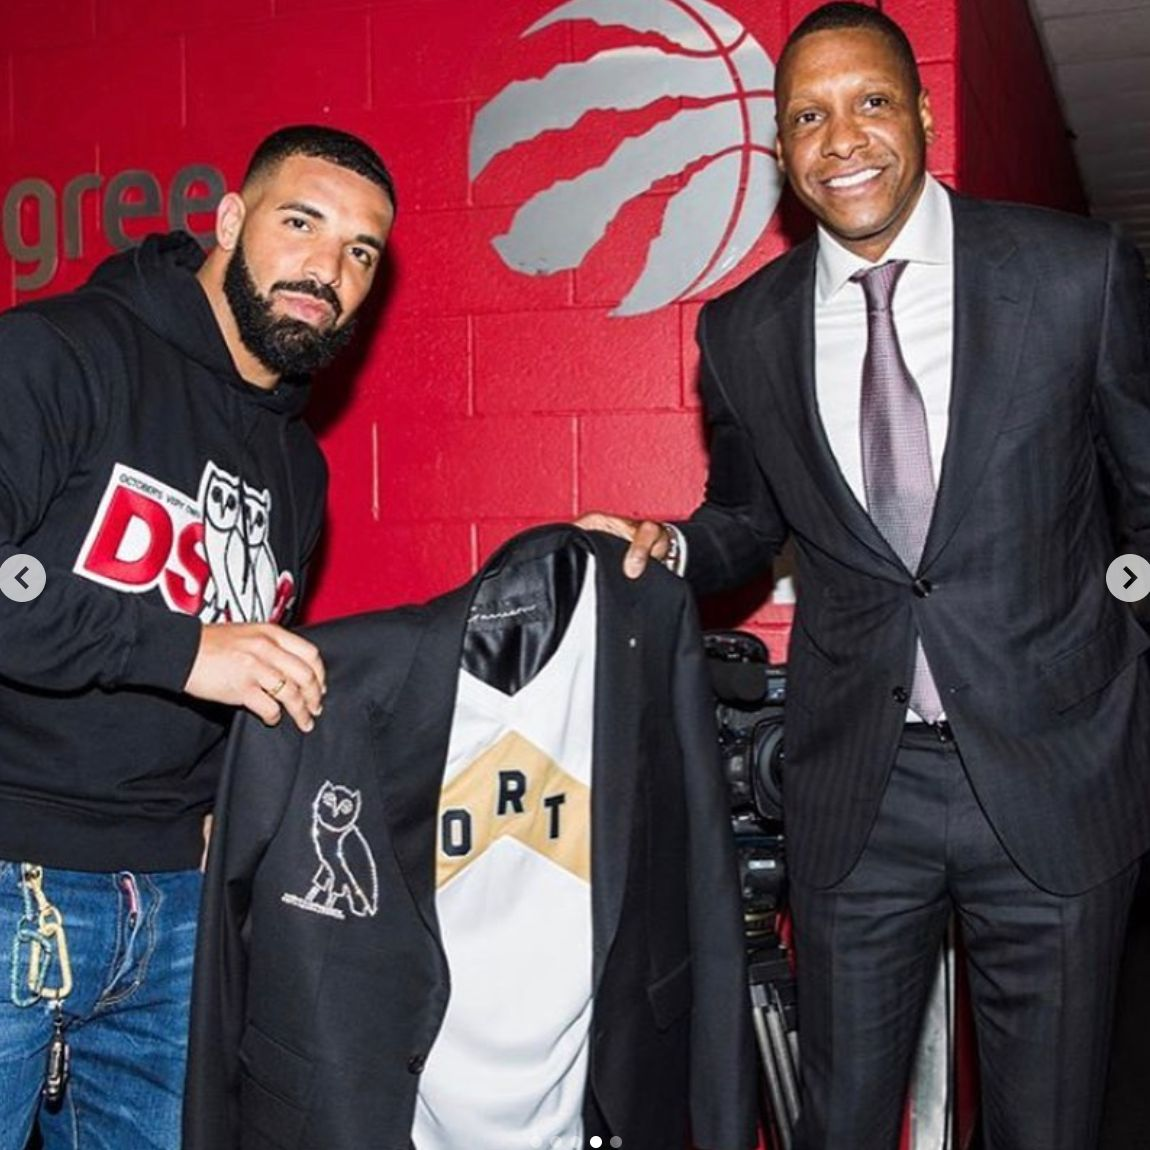 Toronto Designer Gifts Drake $769K Diamond Jacket At Raptors